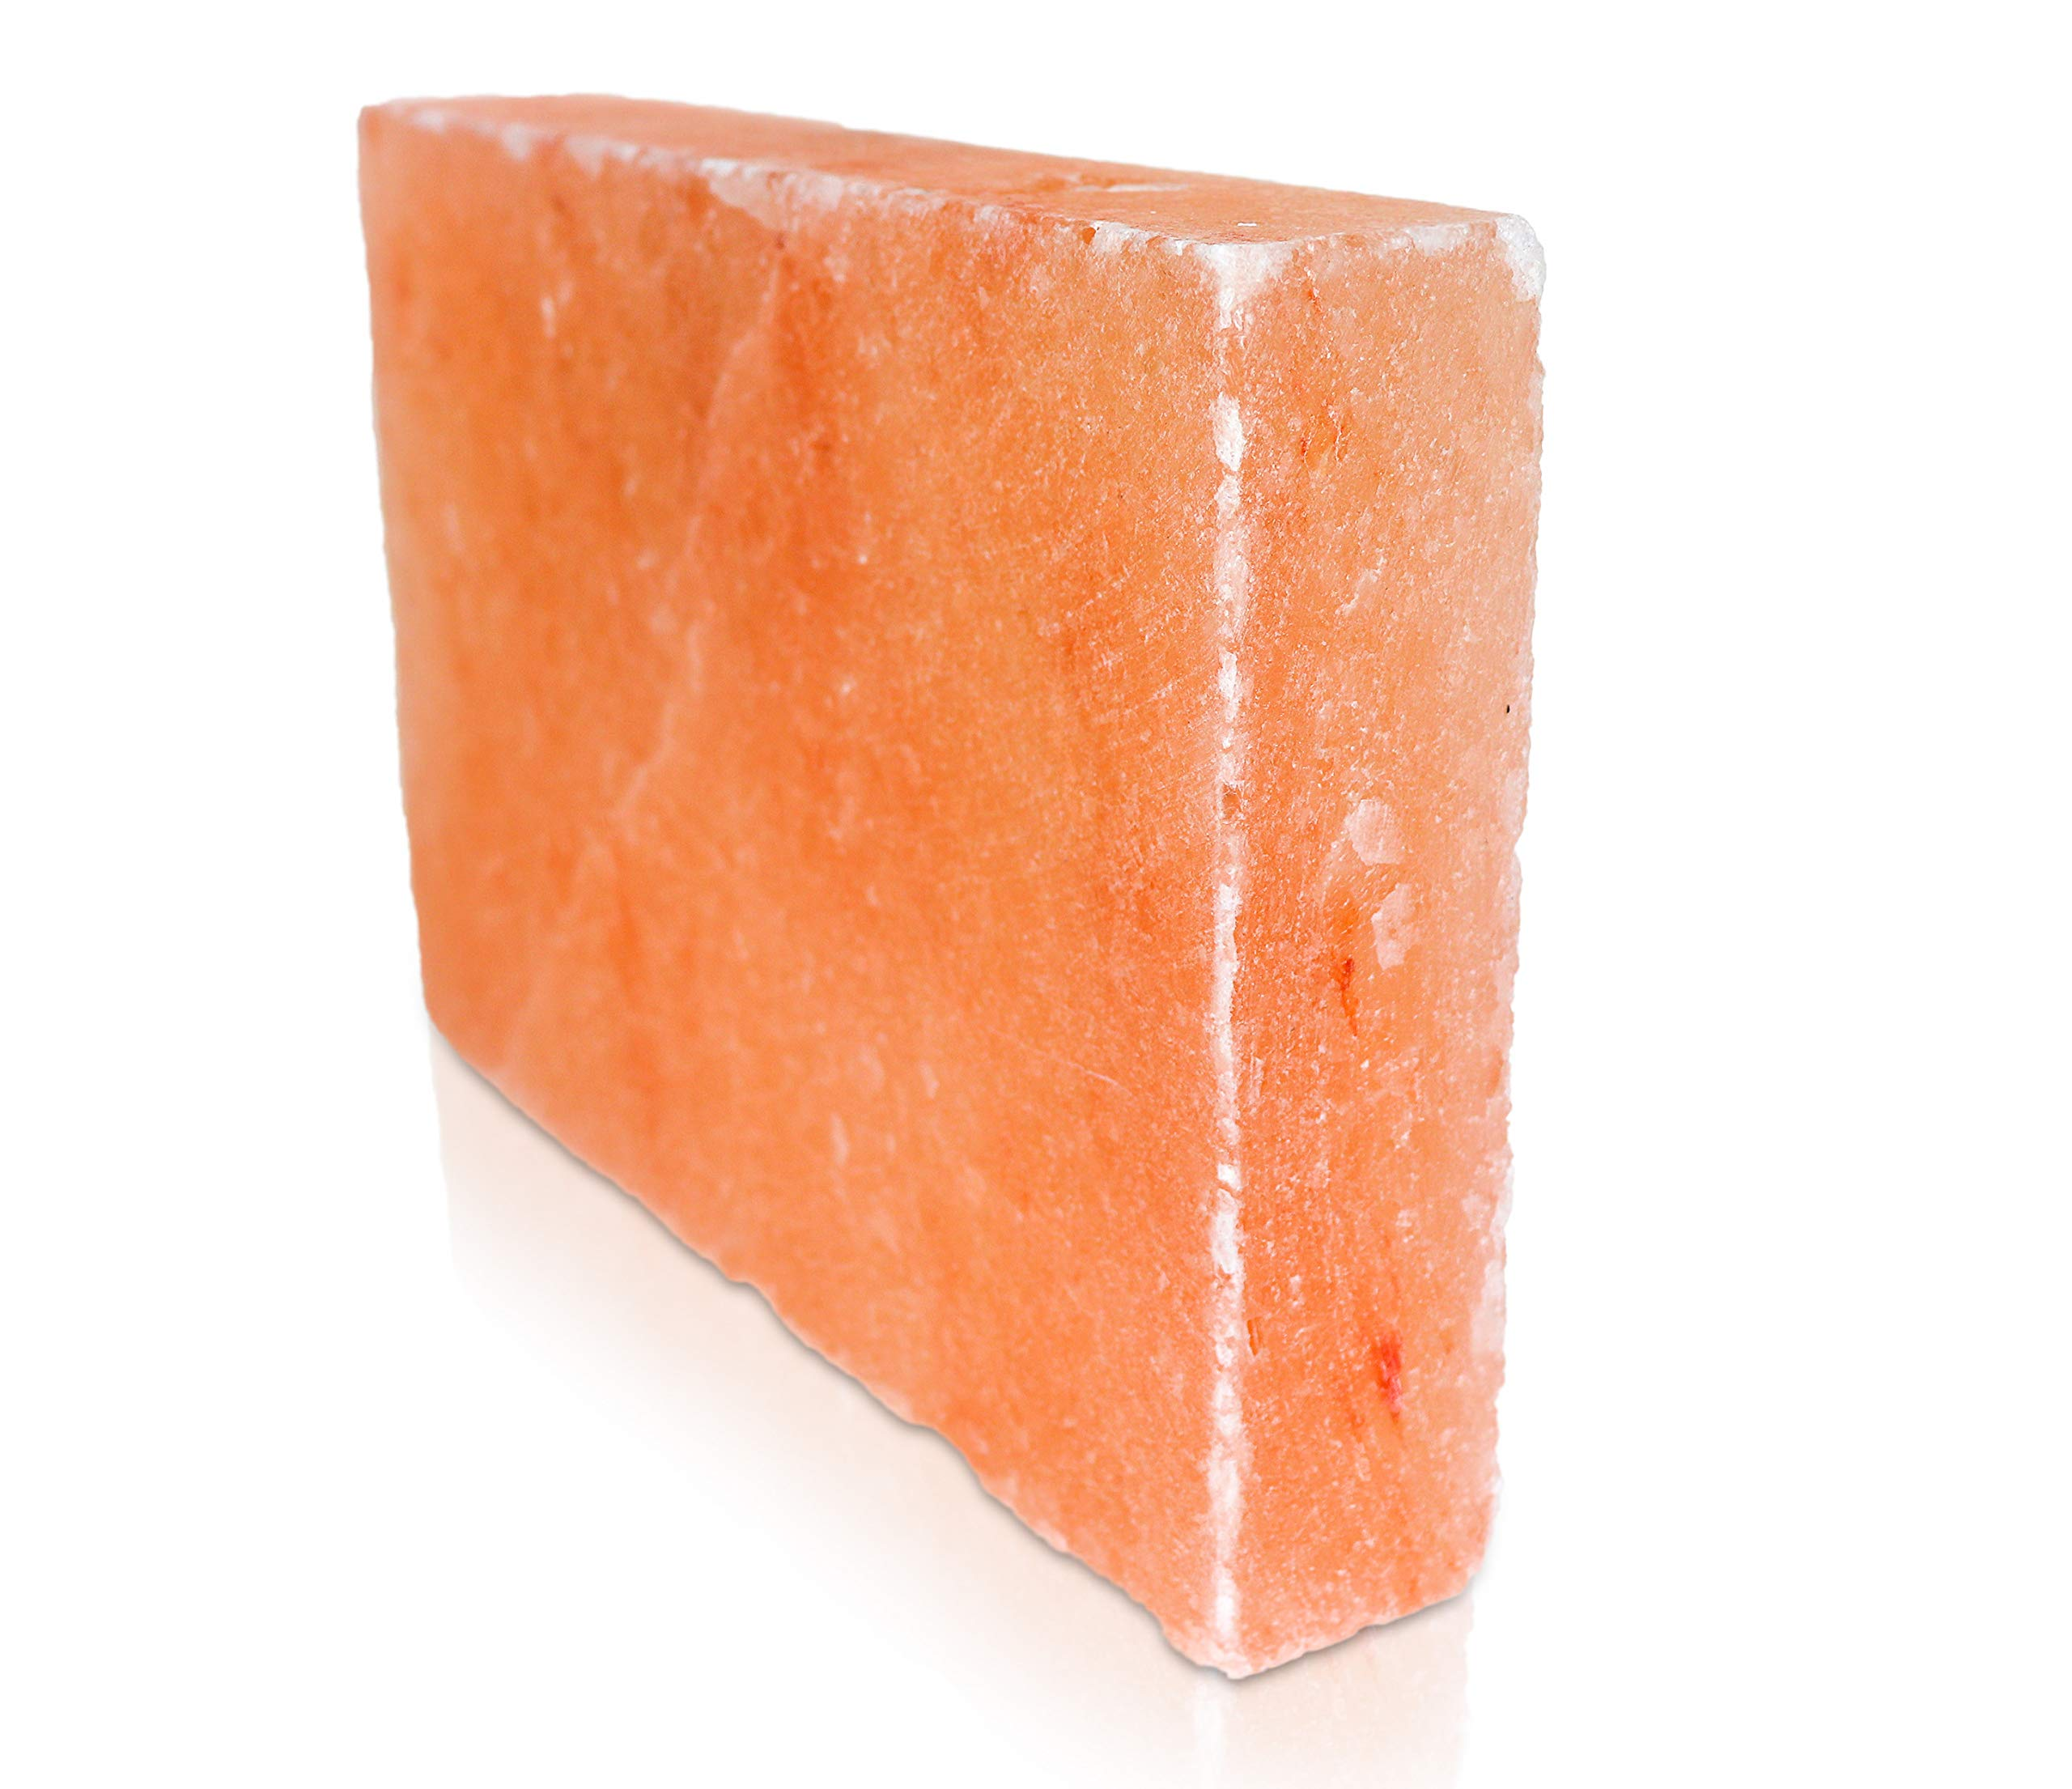 Himalayan Secrets Himalayan Salt Block Cooking Tile for Grilling or Serving - for Building Salt Walls As Well (12'' x 8'' x 2'') by Himalayan Secrets (Image #3)